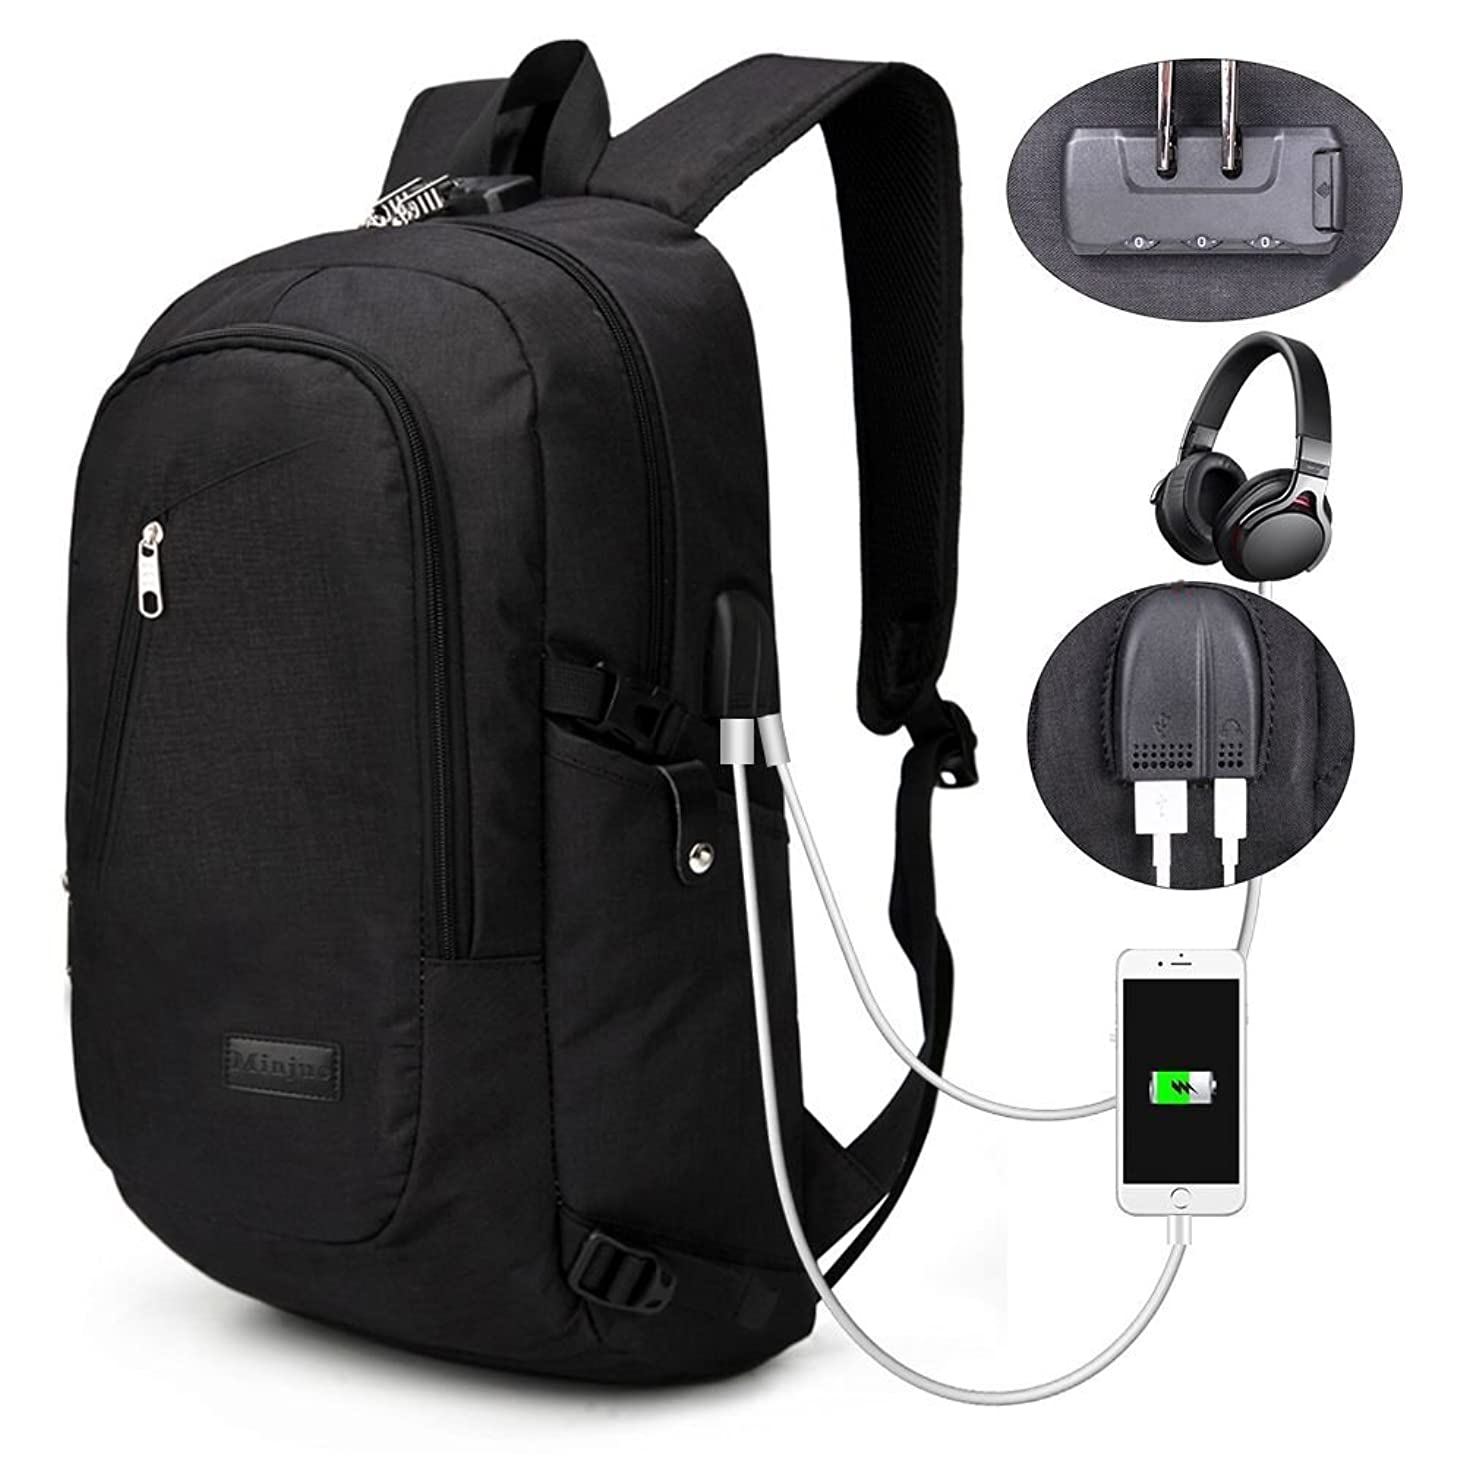 Business Laptop Backpack - Portable Water Resistant Laptop Bag for 15.6 Inch Computers - Business Oxford Notebook Shoulder Bag for Travel, School, with USB Port and Multiple Zipper Pockets (Black)